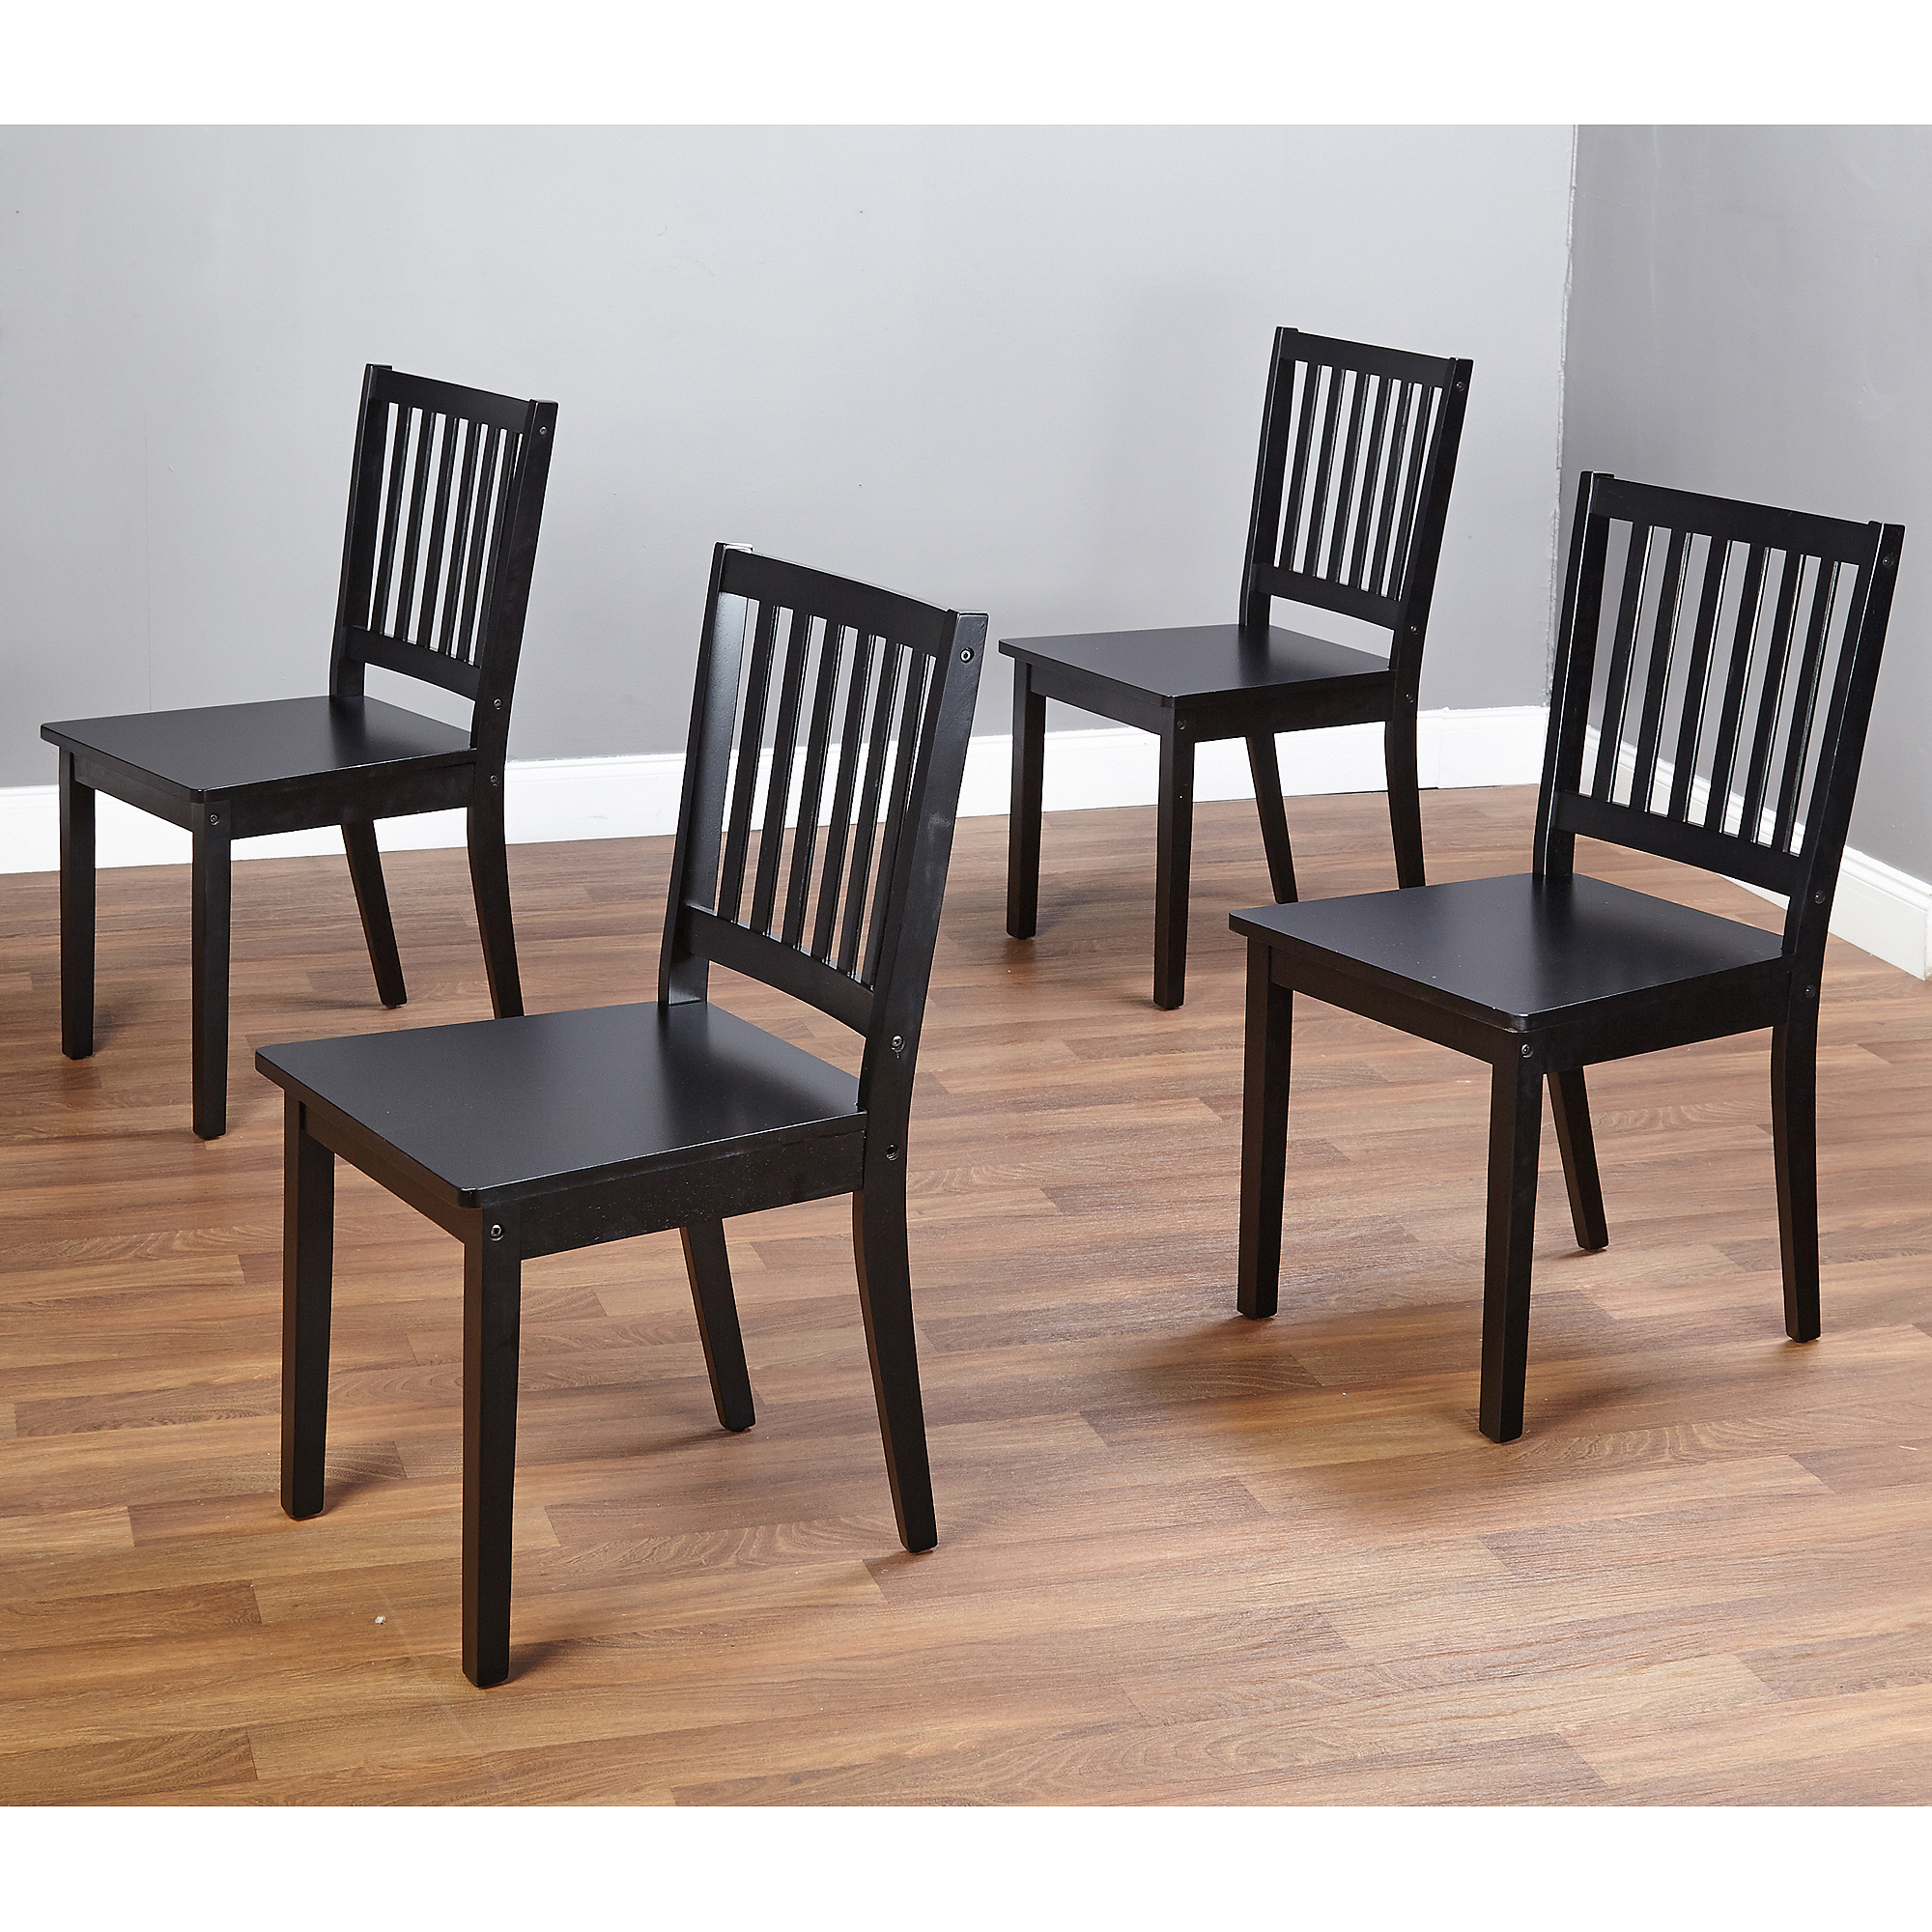 Dining Chairs Sets: Shaker Dining Chairs, Set Of 4, Black 24319100190